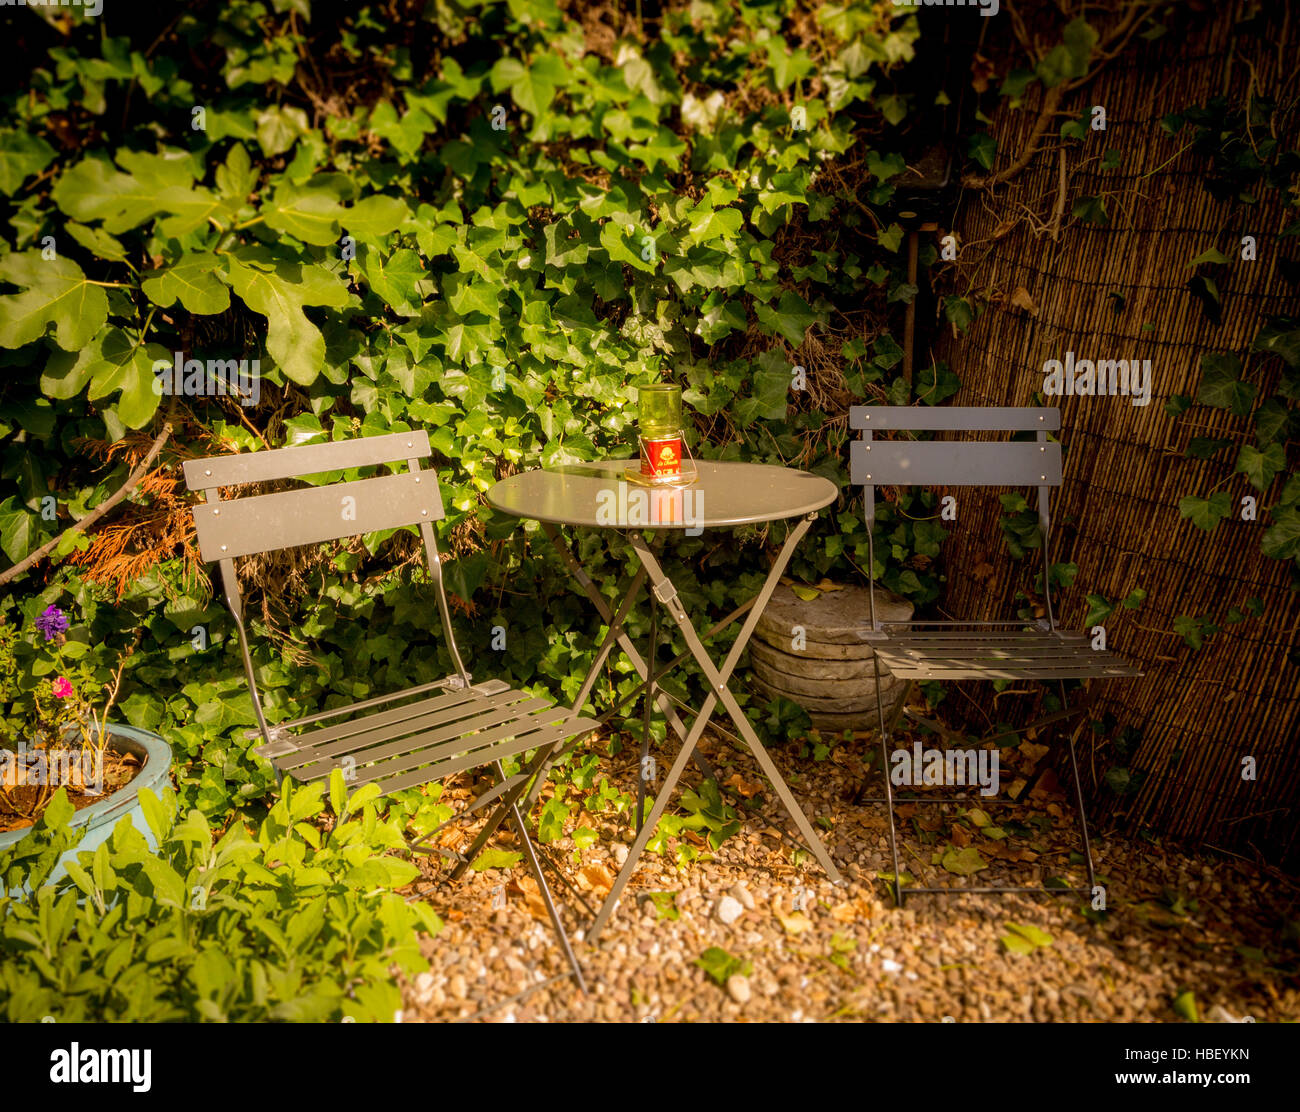 Bistro seating area in UK garden with table and two chairs - Stock Image